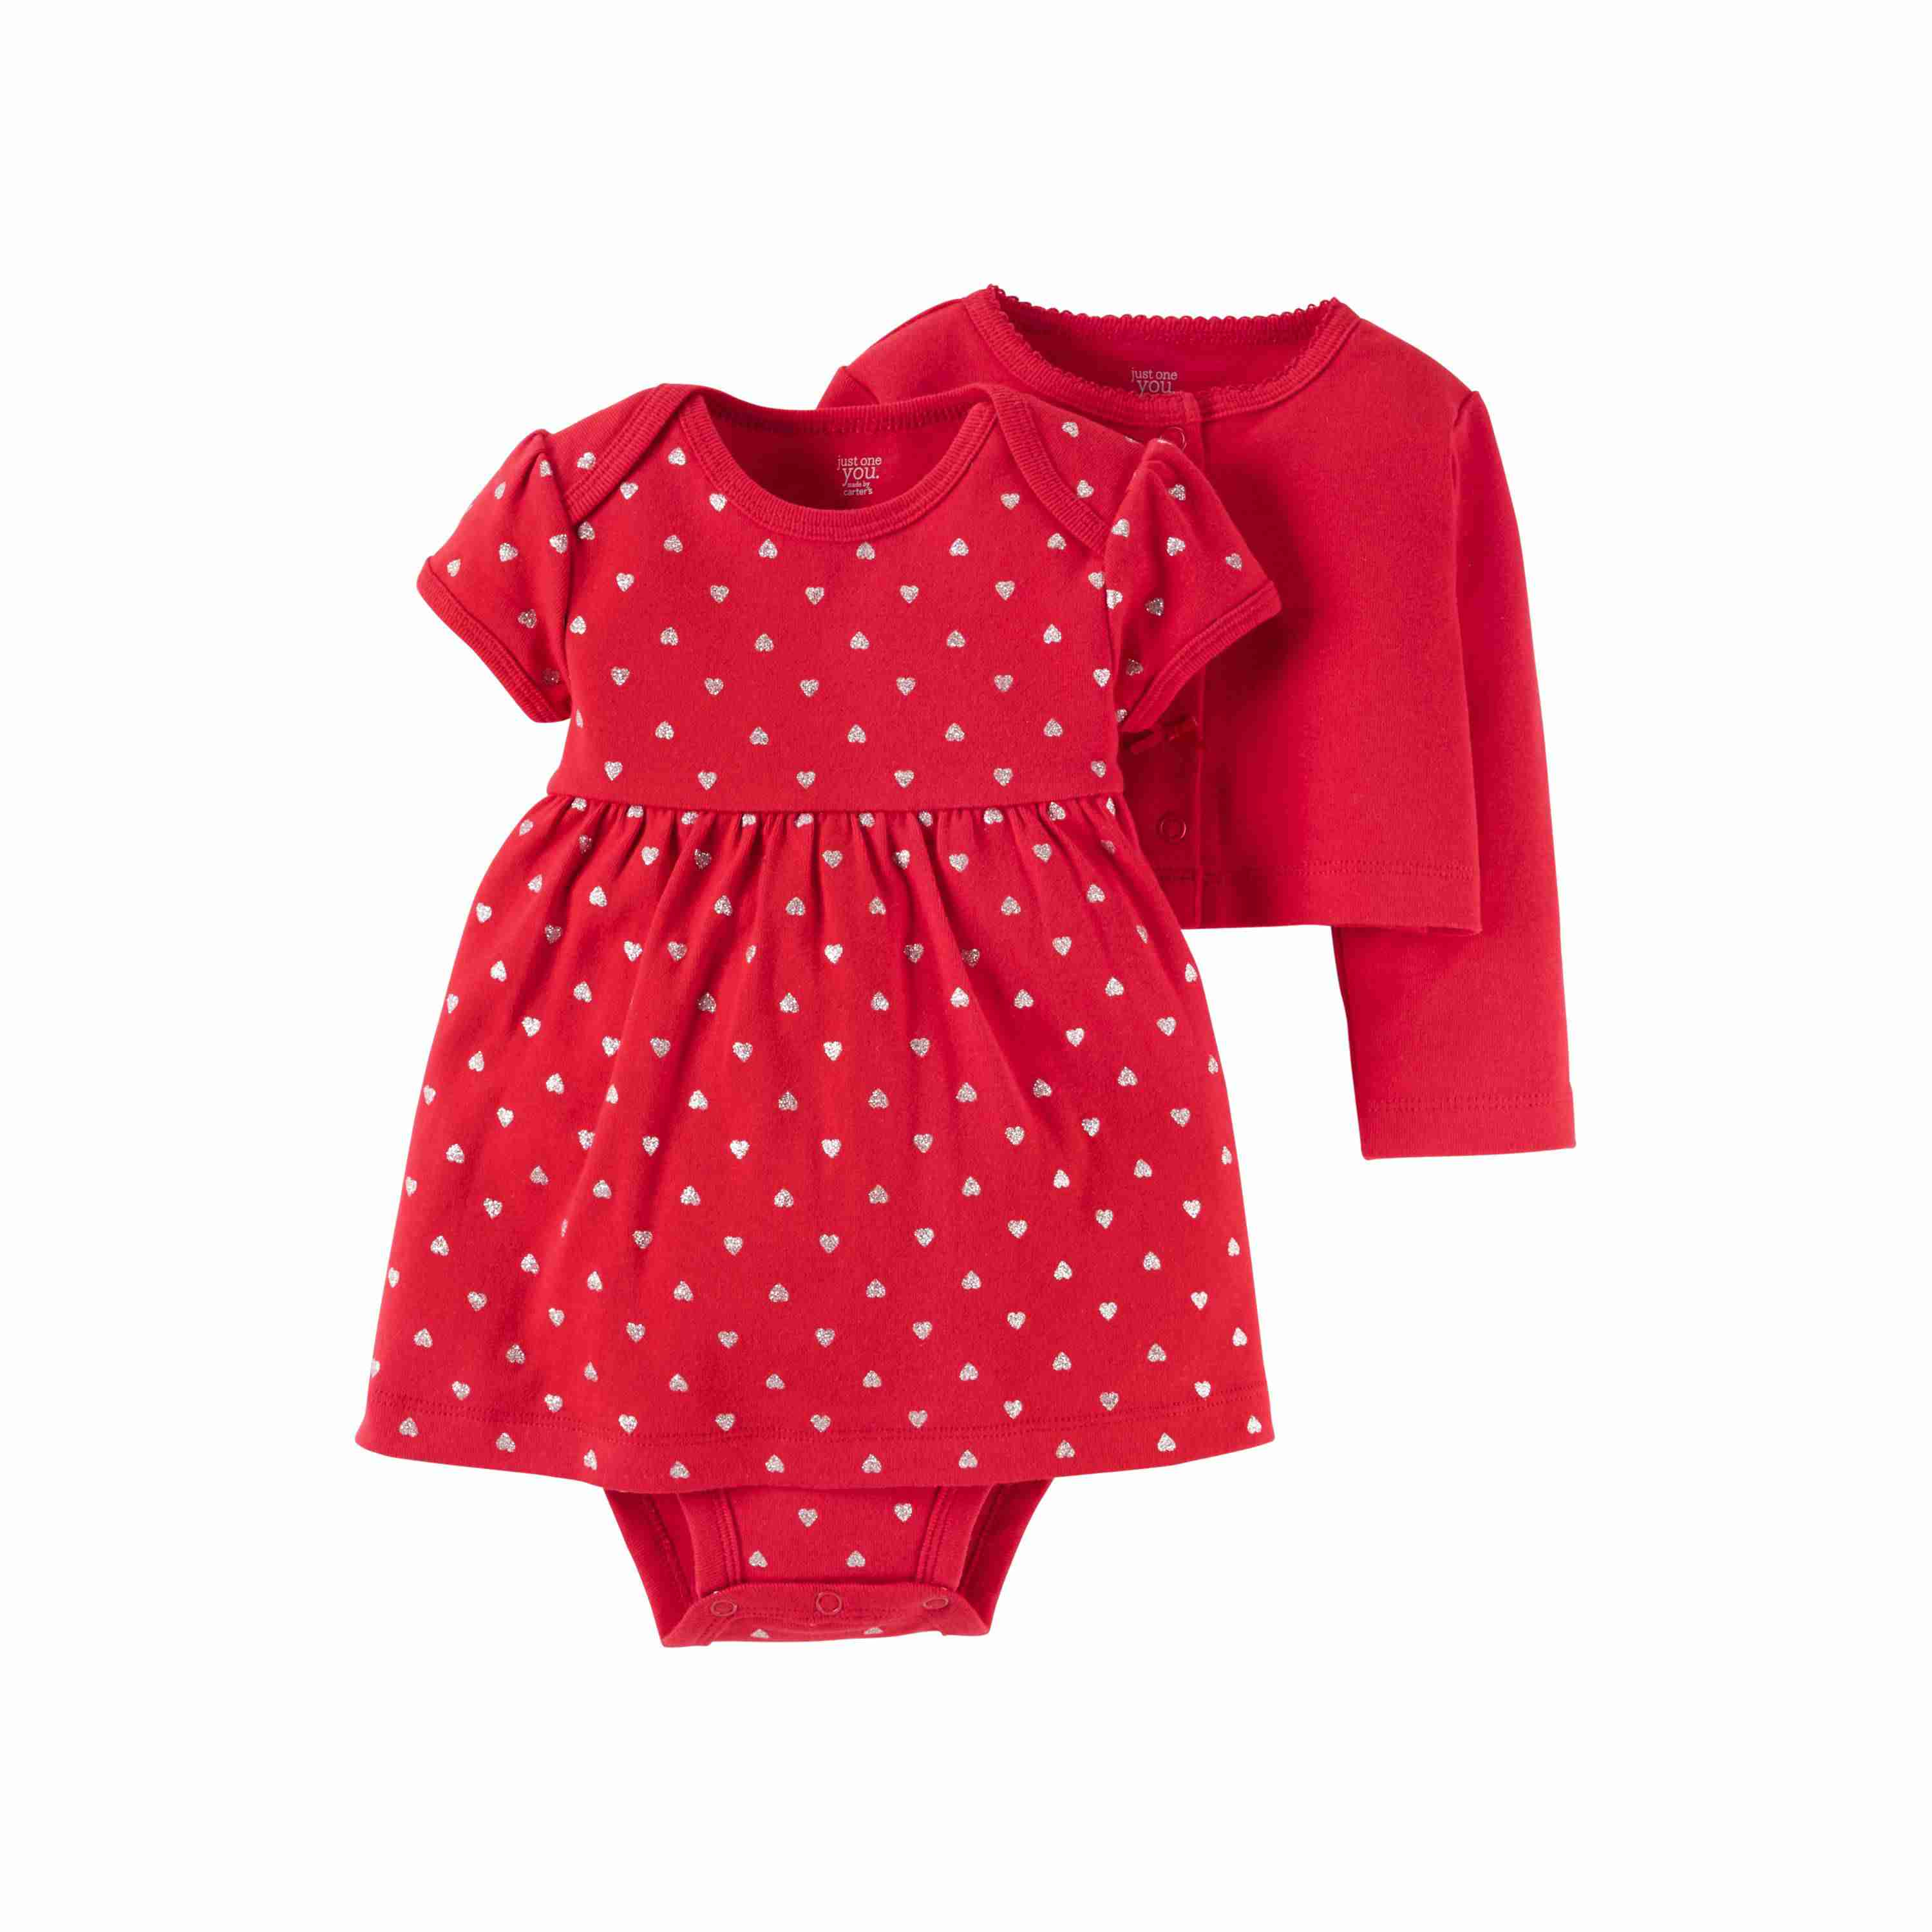 66cbe8846 Baby Girls' 2-Piece Dress Set Red by Just One You Made by Carter's at Target